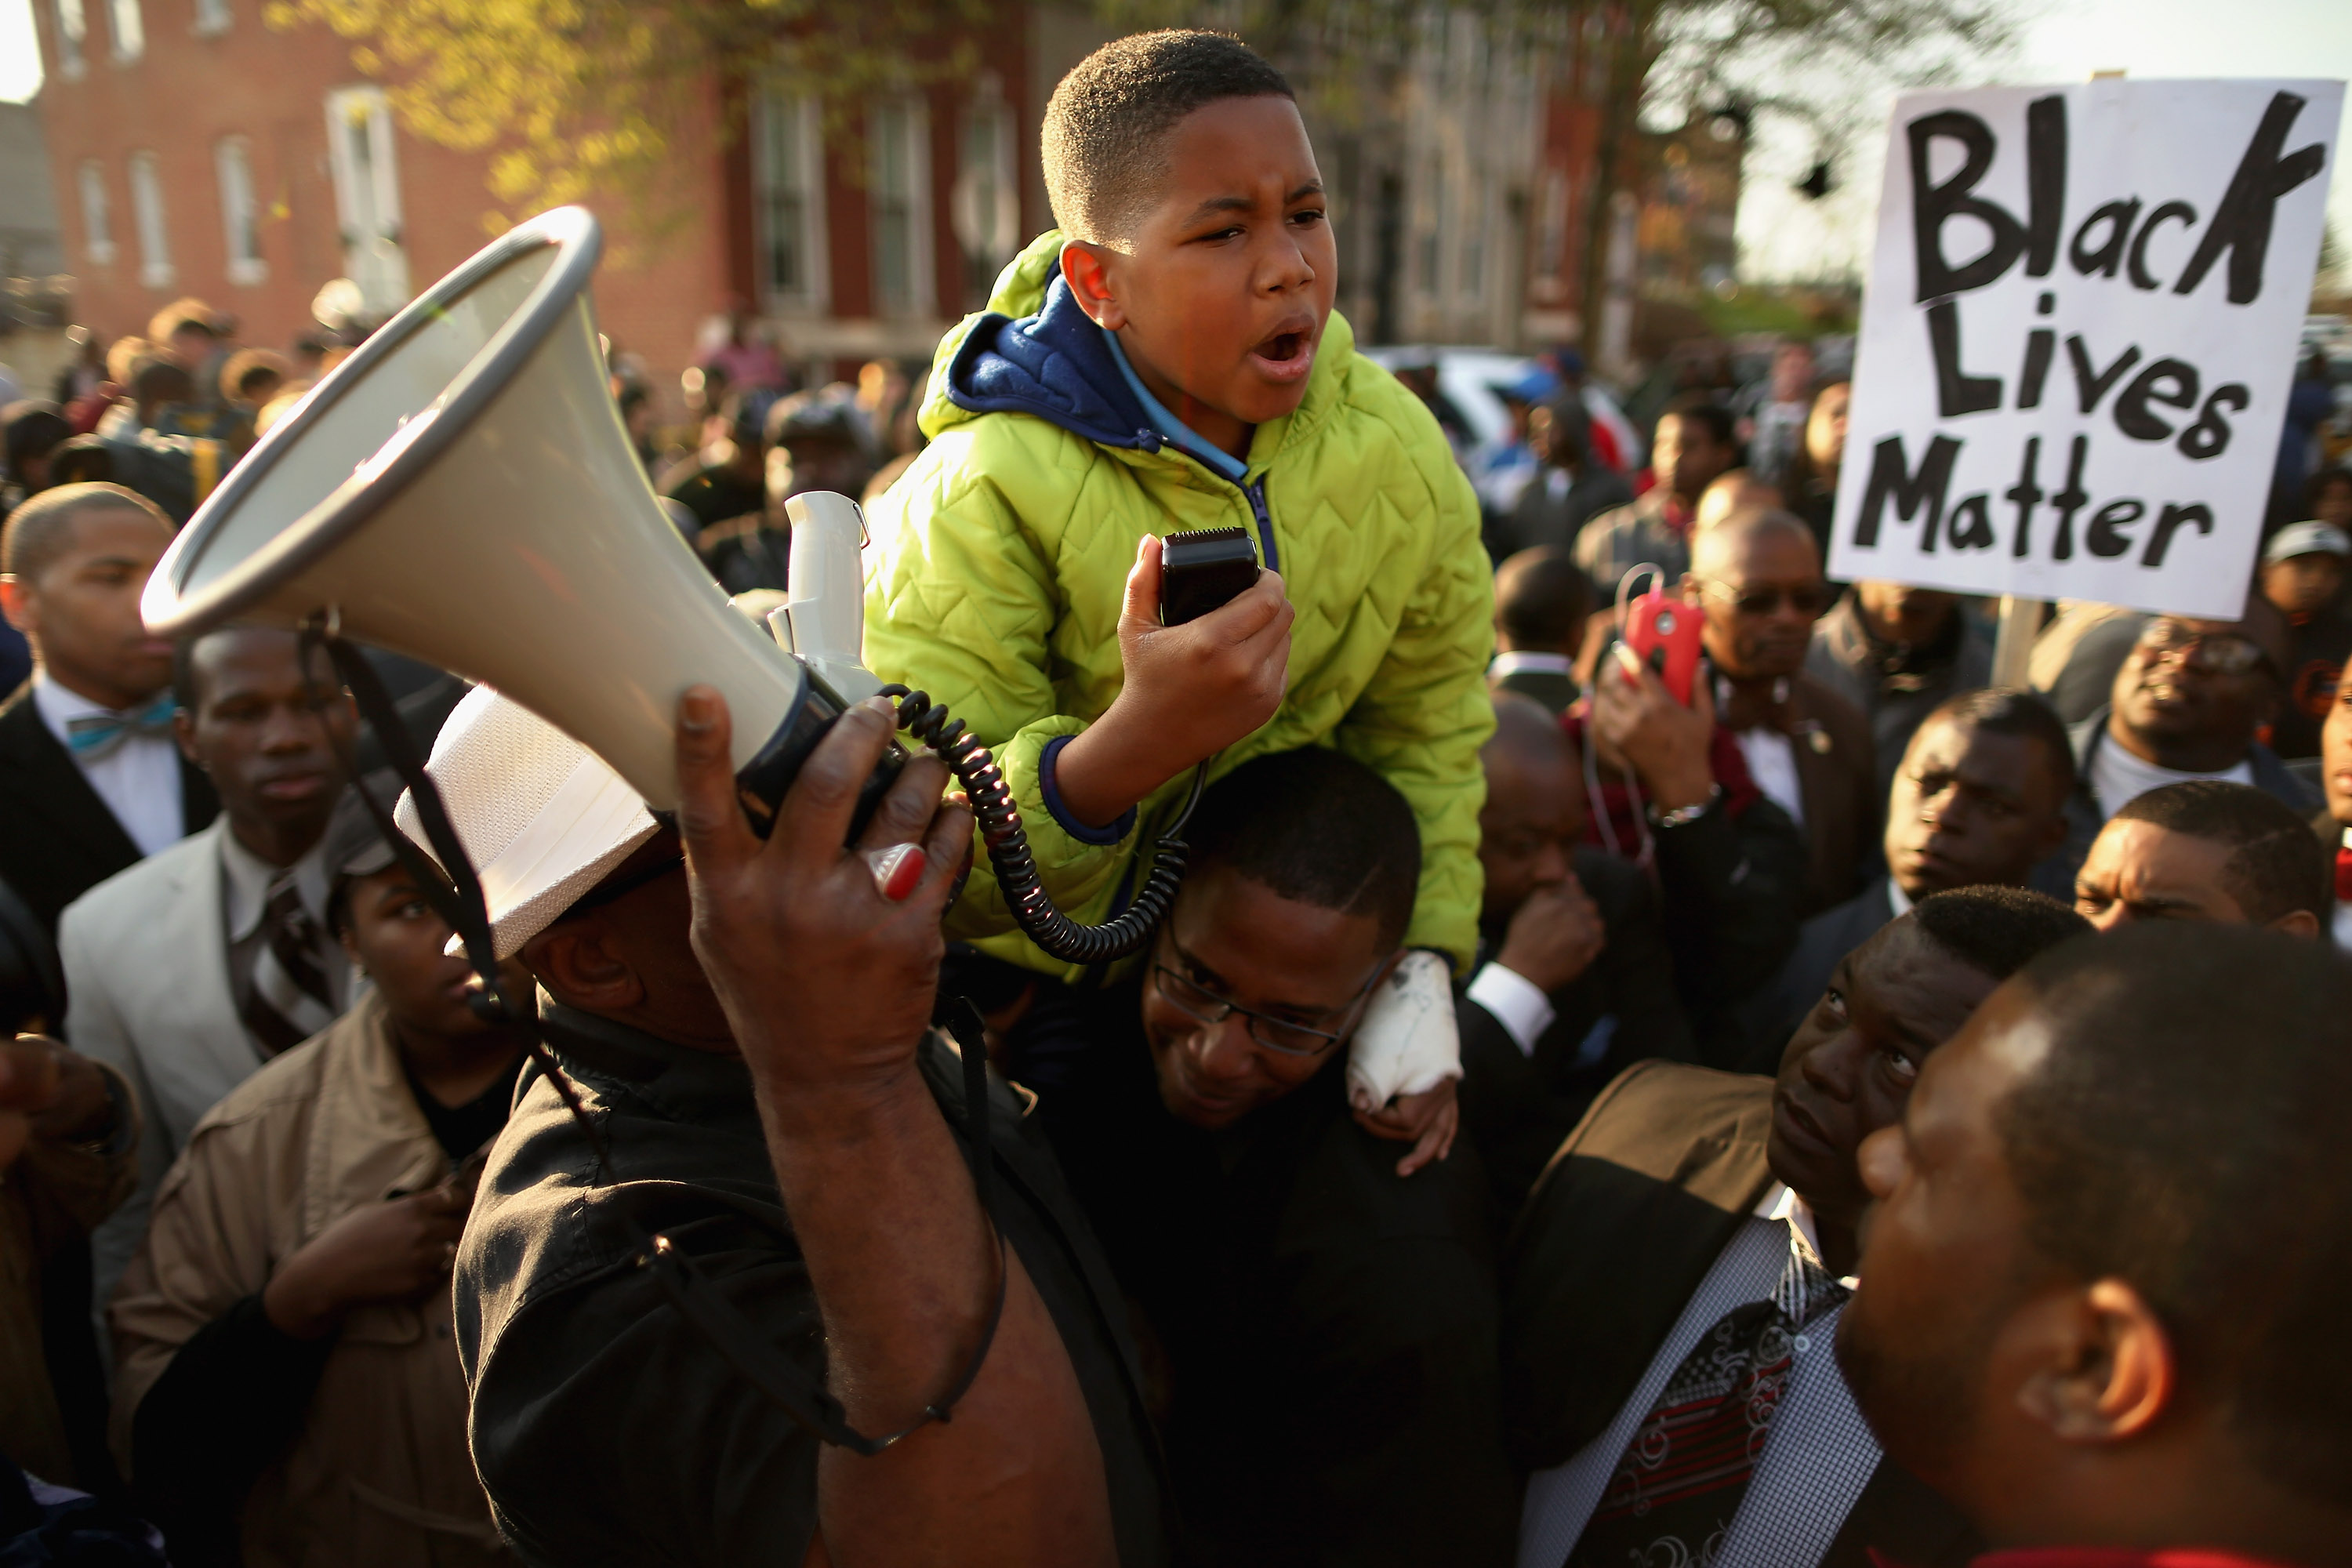 BALTIMORE, MD - APRIL 22:  Ten-year-old Robert Dunn uses a megaphone to address hundreds of demonstrators during a protest against police brutality and the death of Freddie Gray outside the Baltimore Police Western District station April 22, 2015 in Baltimore, Maryland. Gray, 25, was arrested for possessing a switch blade knife April 12 outside the Gilmor Homes housing project on Baltimore's west side. According to his attorney, Gray died a week later in the hospital from a severe spinal cord injury he received while in police custody.  (Photo by Chip Somodevilla/Getty Images)